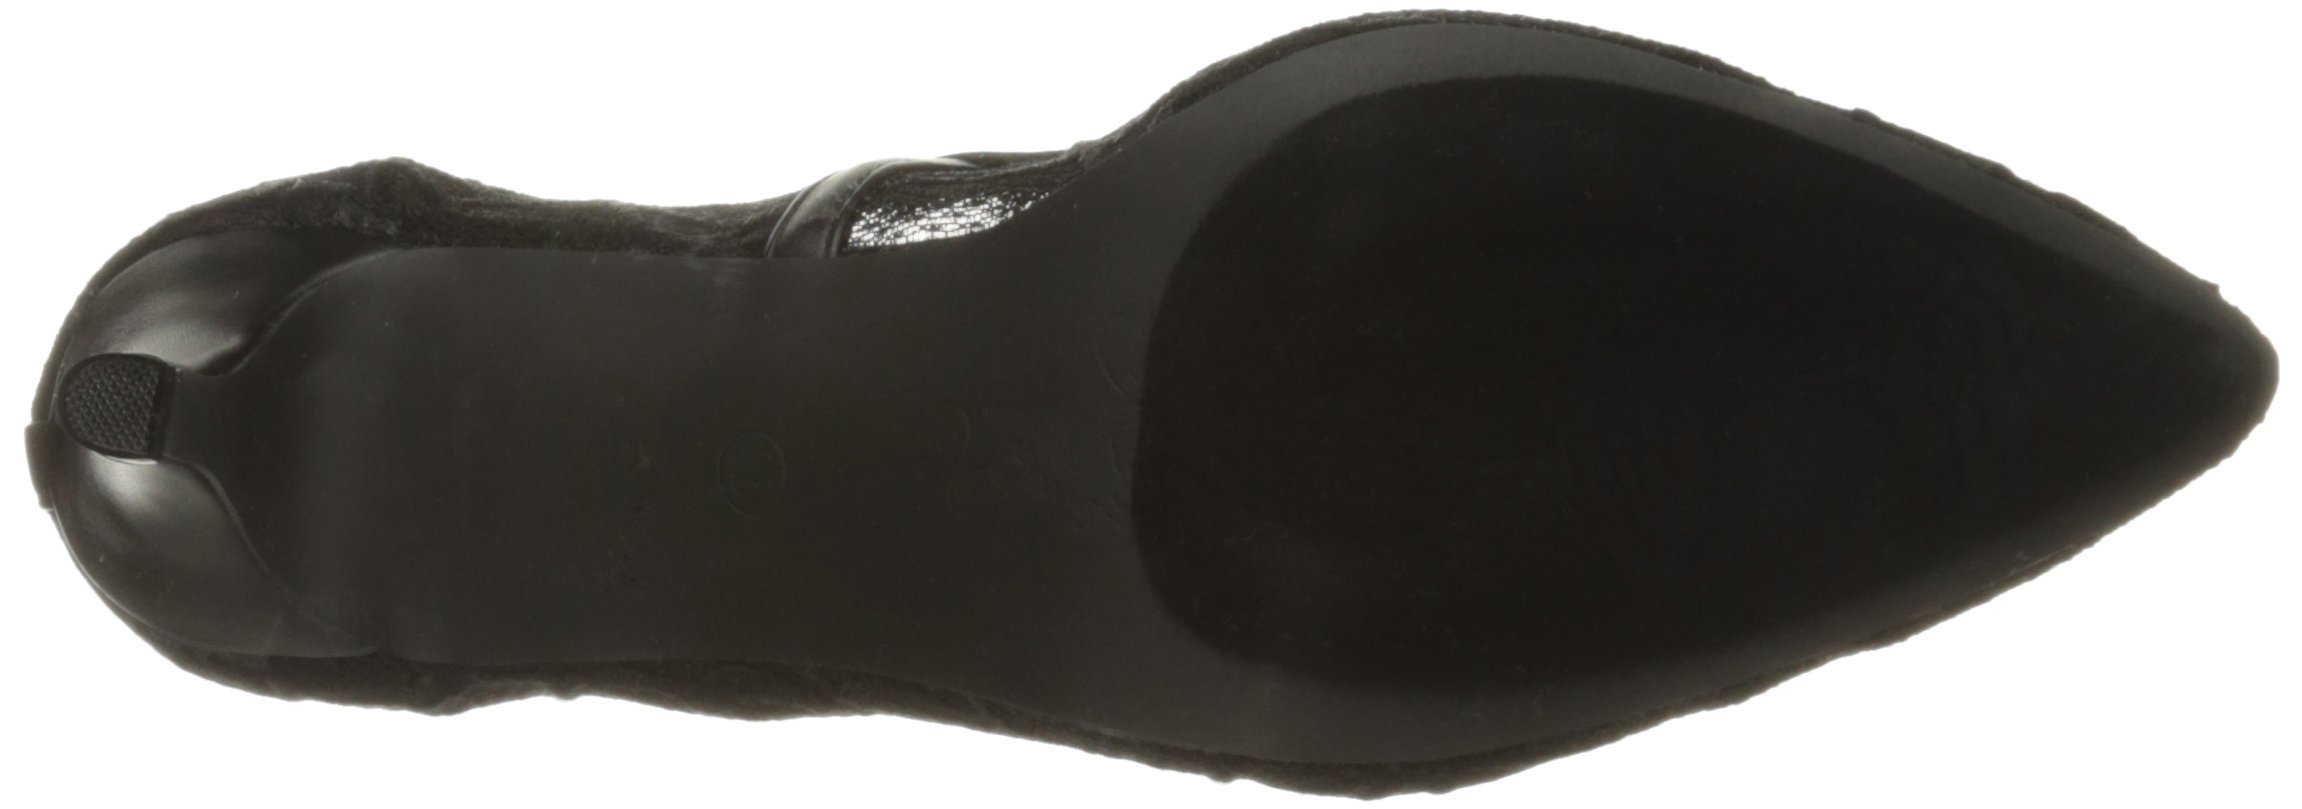 Penny Loves Kenny Women's Union Dress Pump, Black, 7.5 M US by Penny Loves Kenny (Image #3)